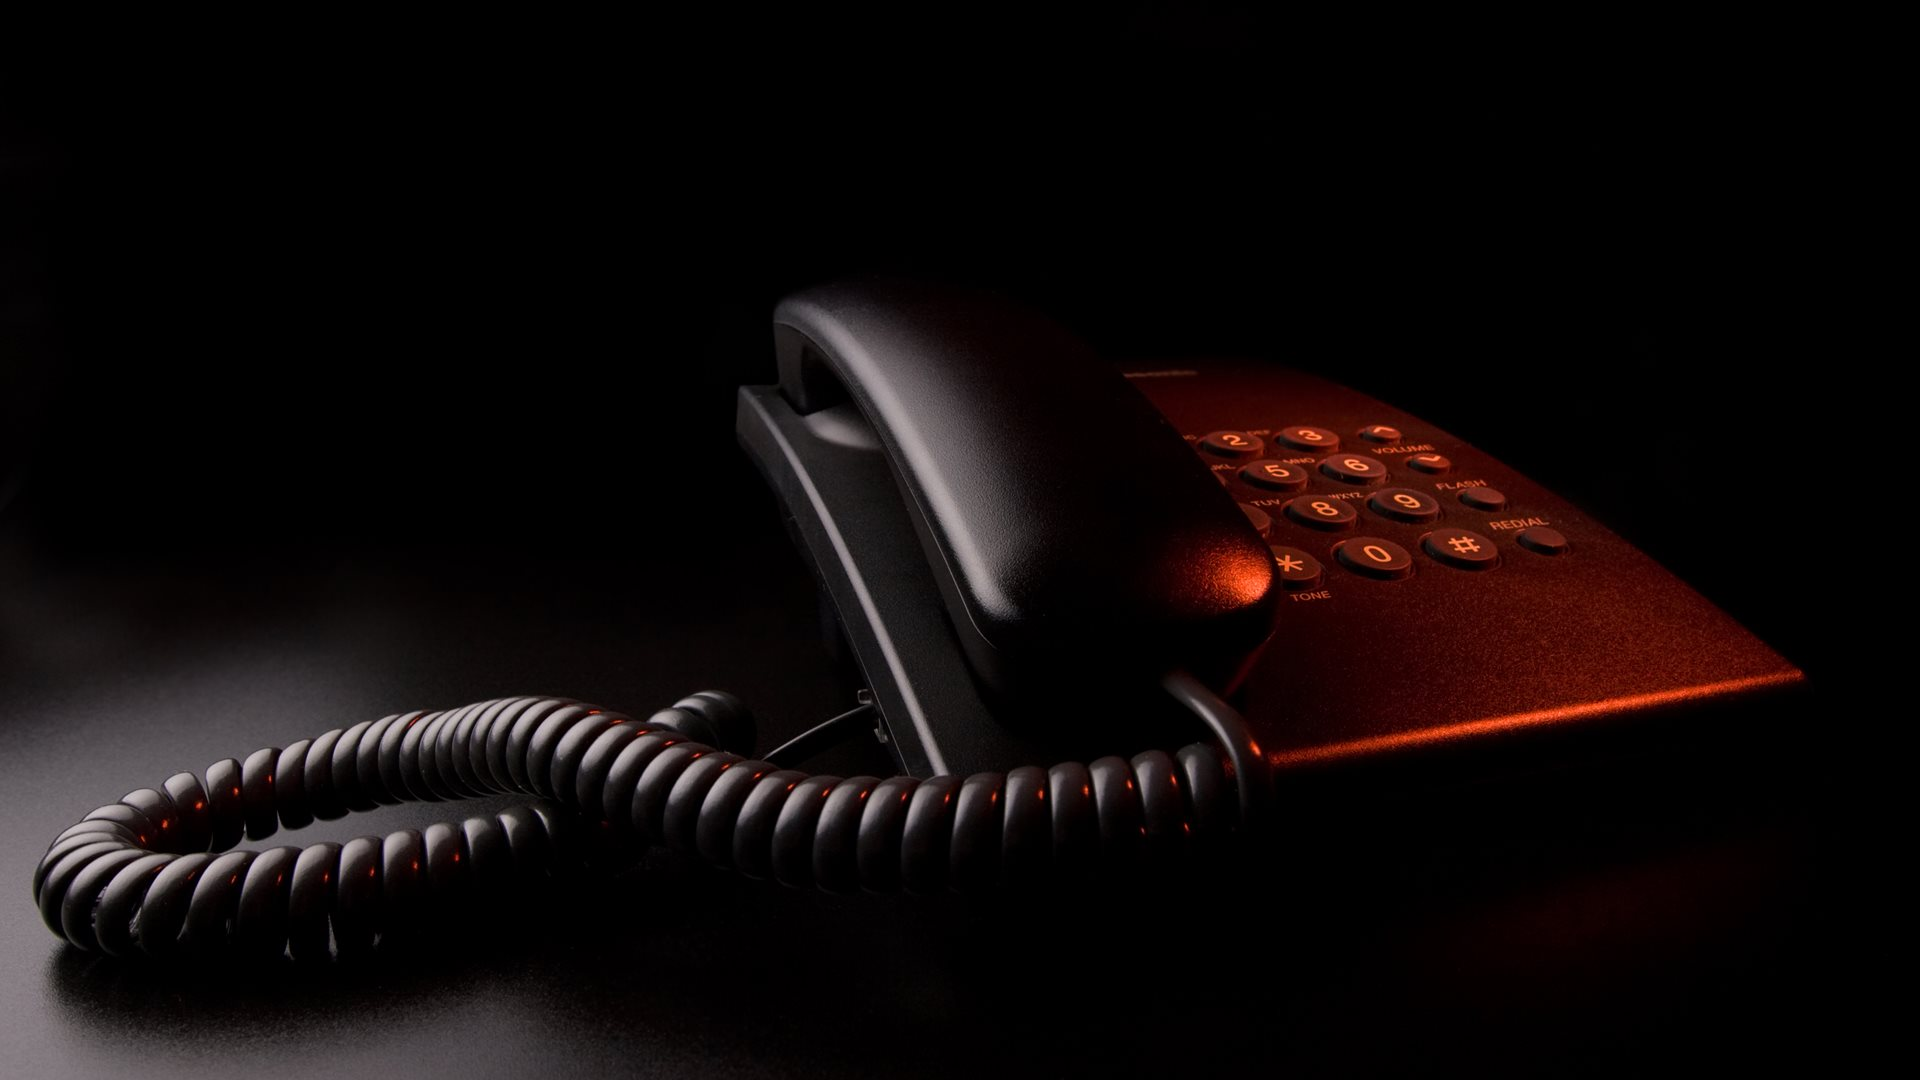 Black old fashioned phone with red light shining on it.